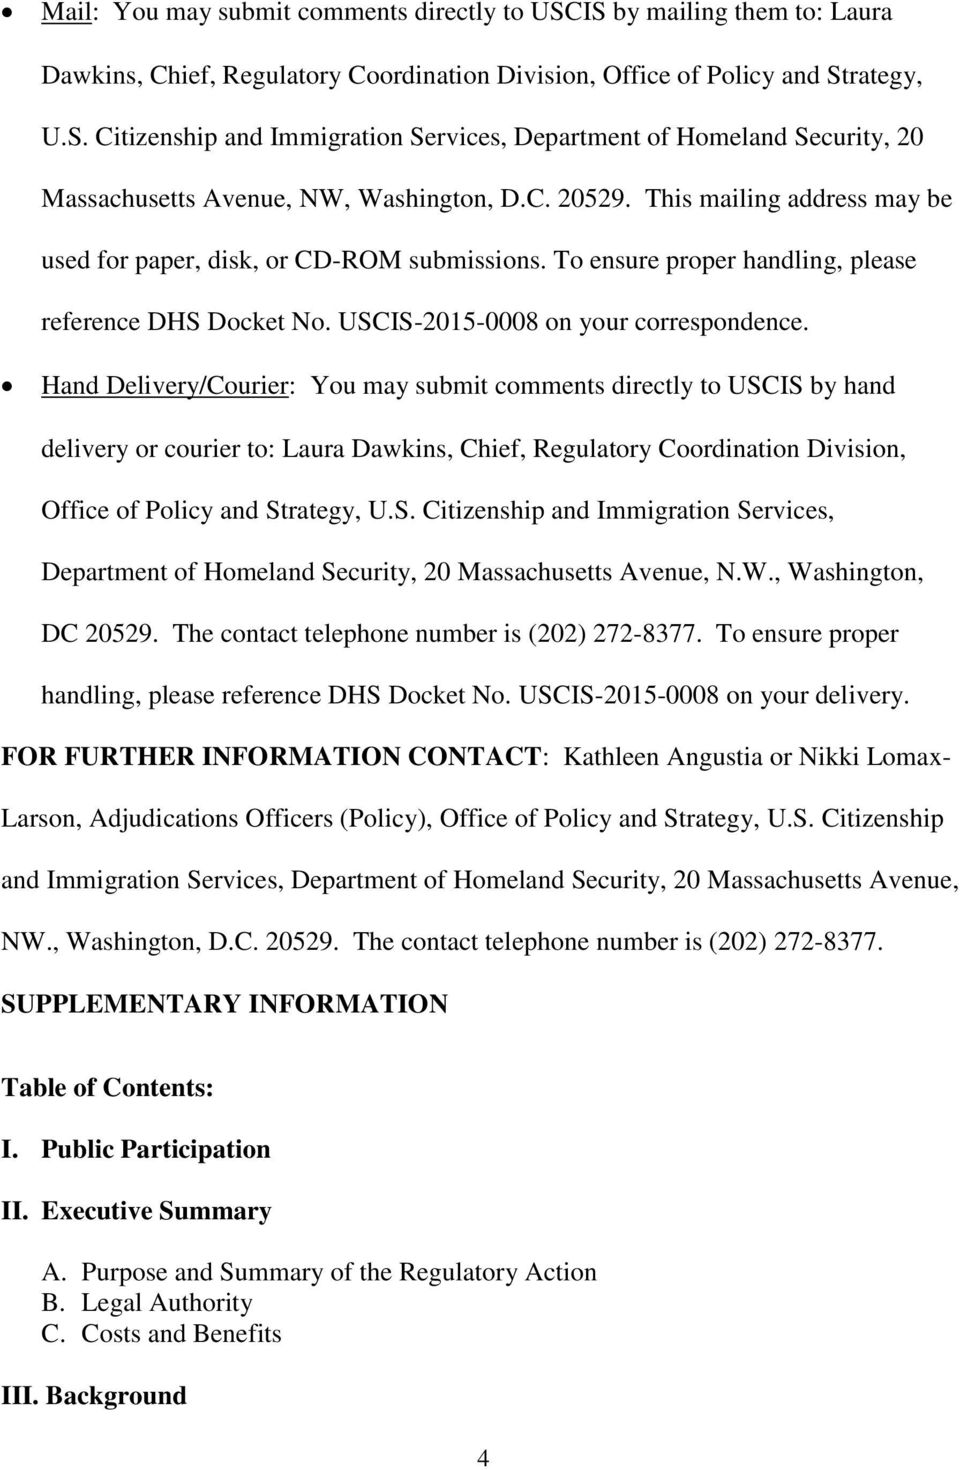 Hand Delivery/Courier: You may submit comments directly to USCIS by hand delivery or courier to: Laura Dawkins, Chief, Regulatory Coordination Division, Office of Policy and Strategy, U.S. Citizenship and Immigration Services, Department of Homeland Security, 20 Massachusetts Avenue, N.